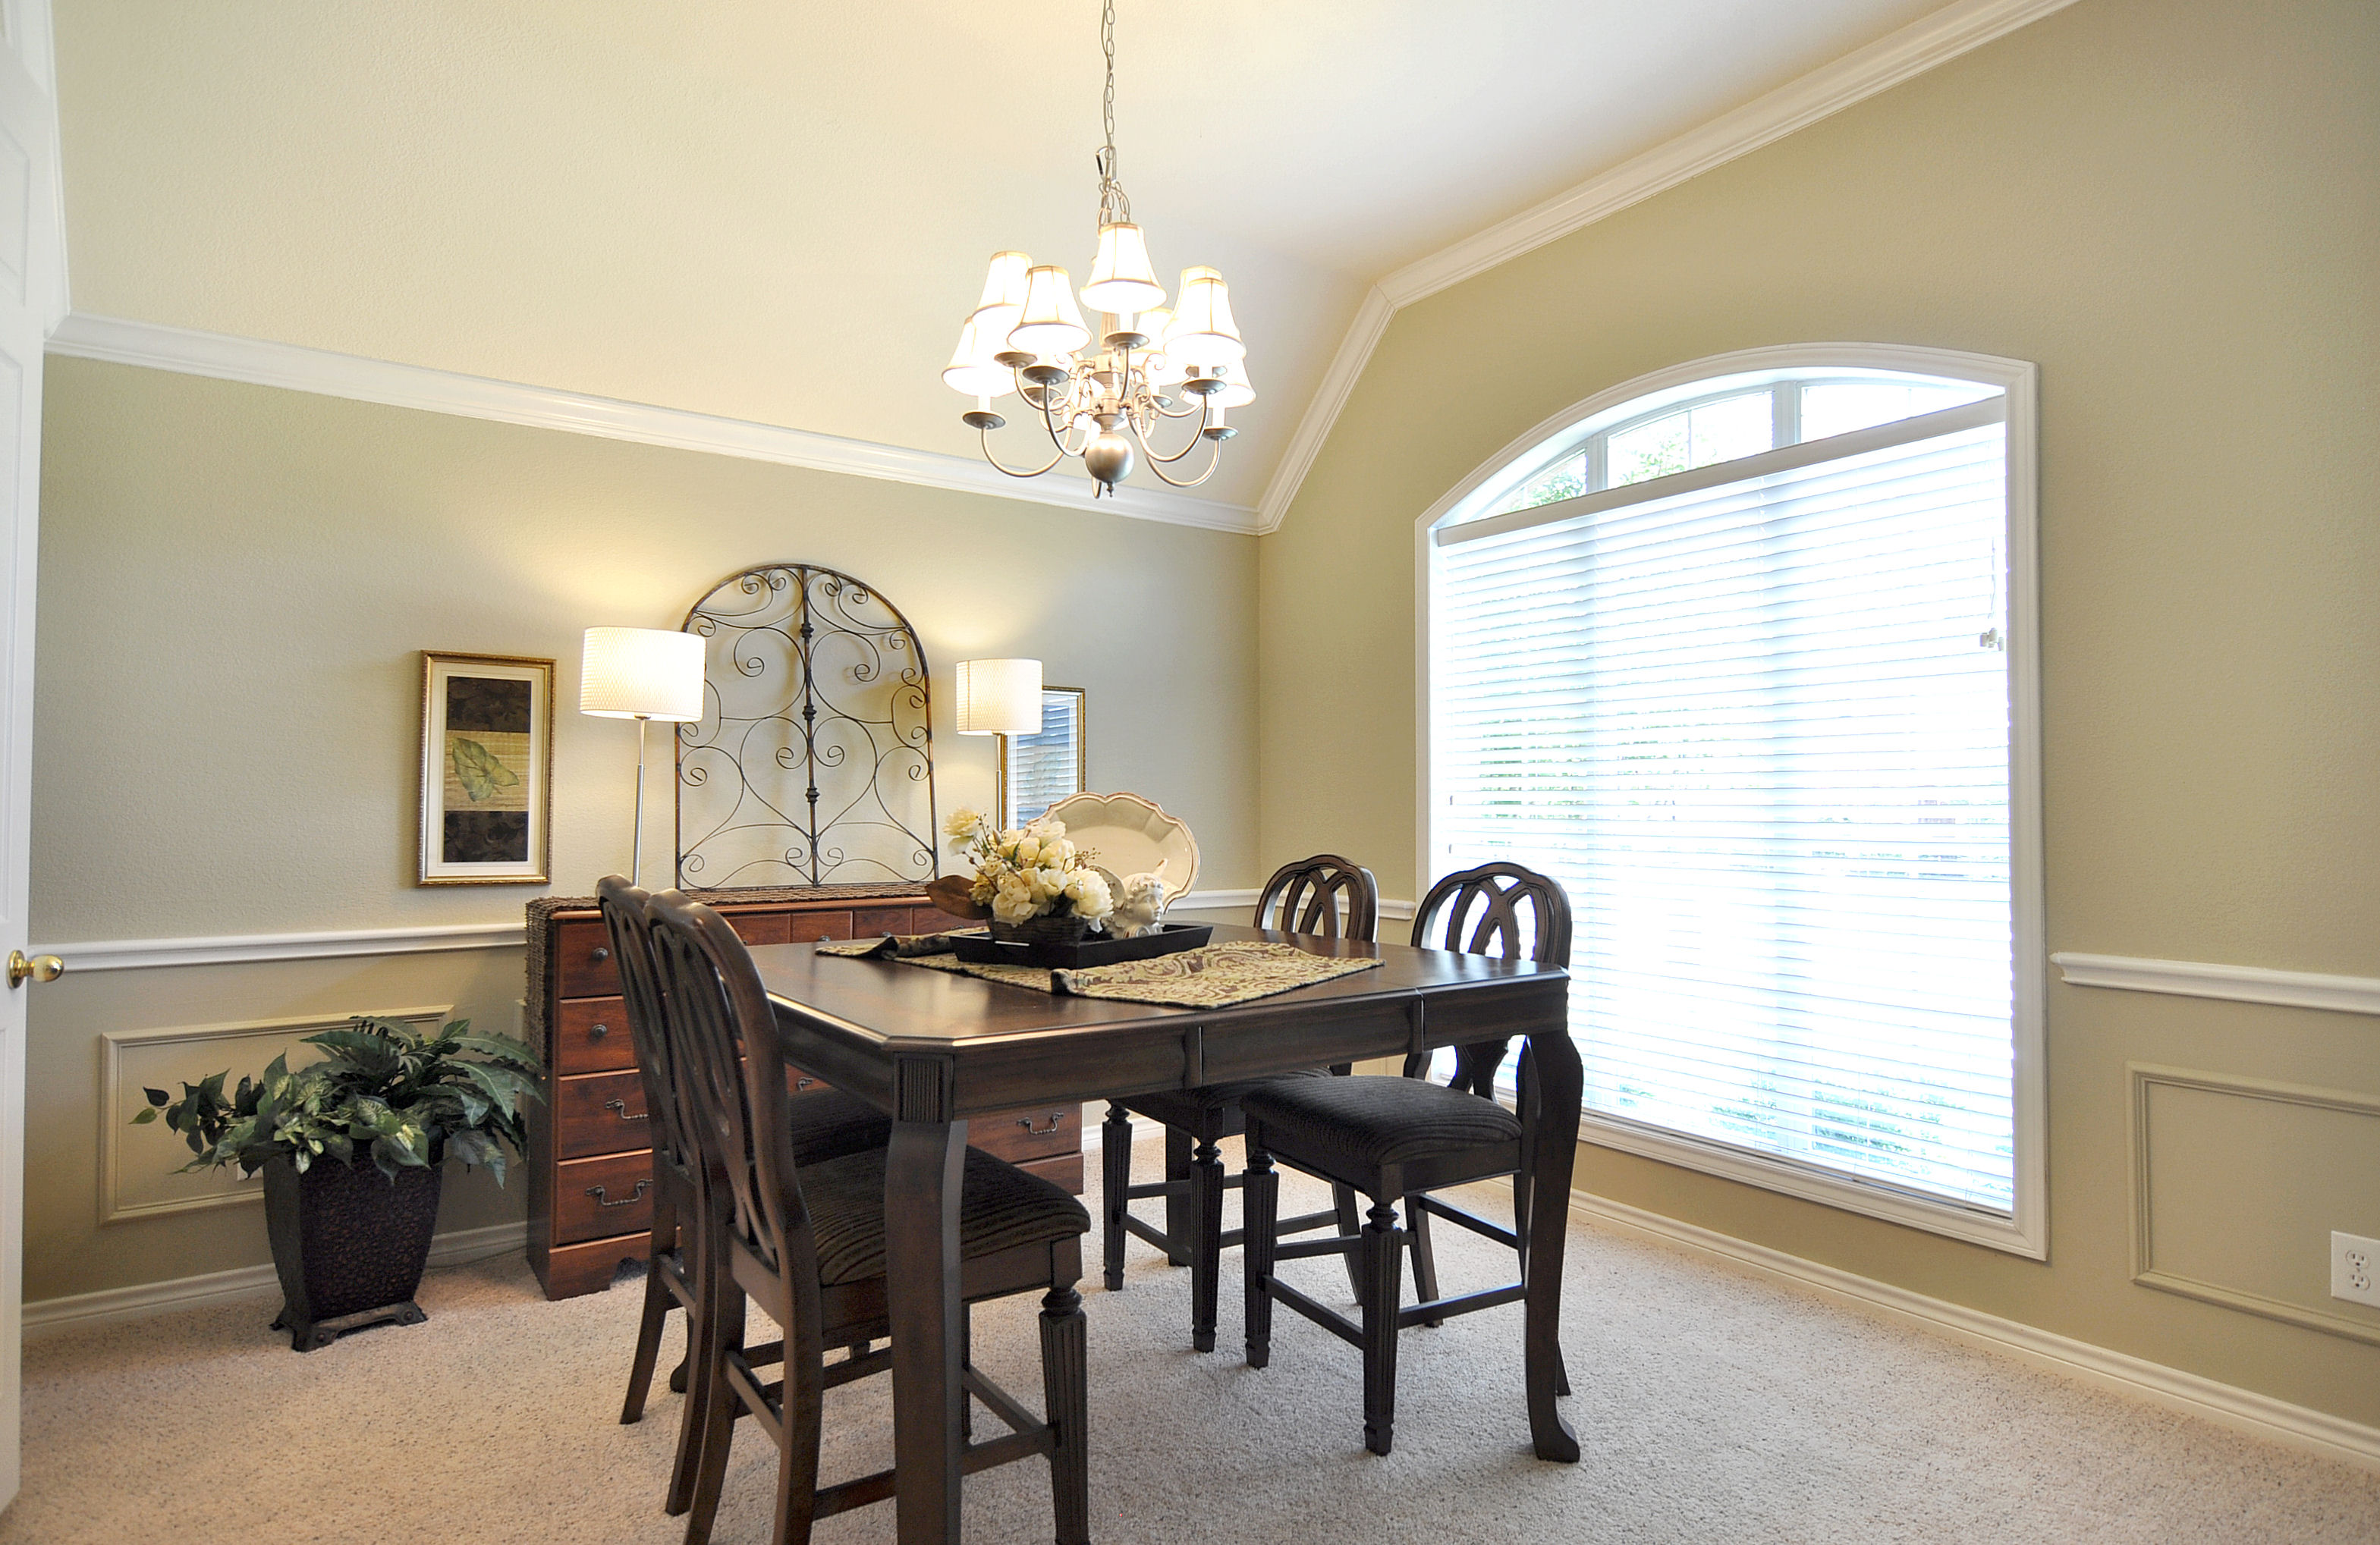 Home Star Staging Staged then ReStaged A Dining Rooms